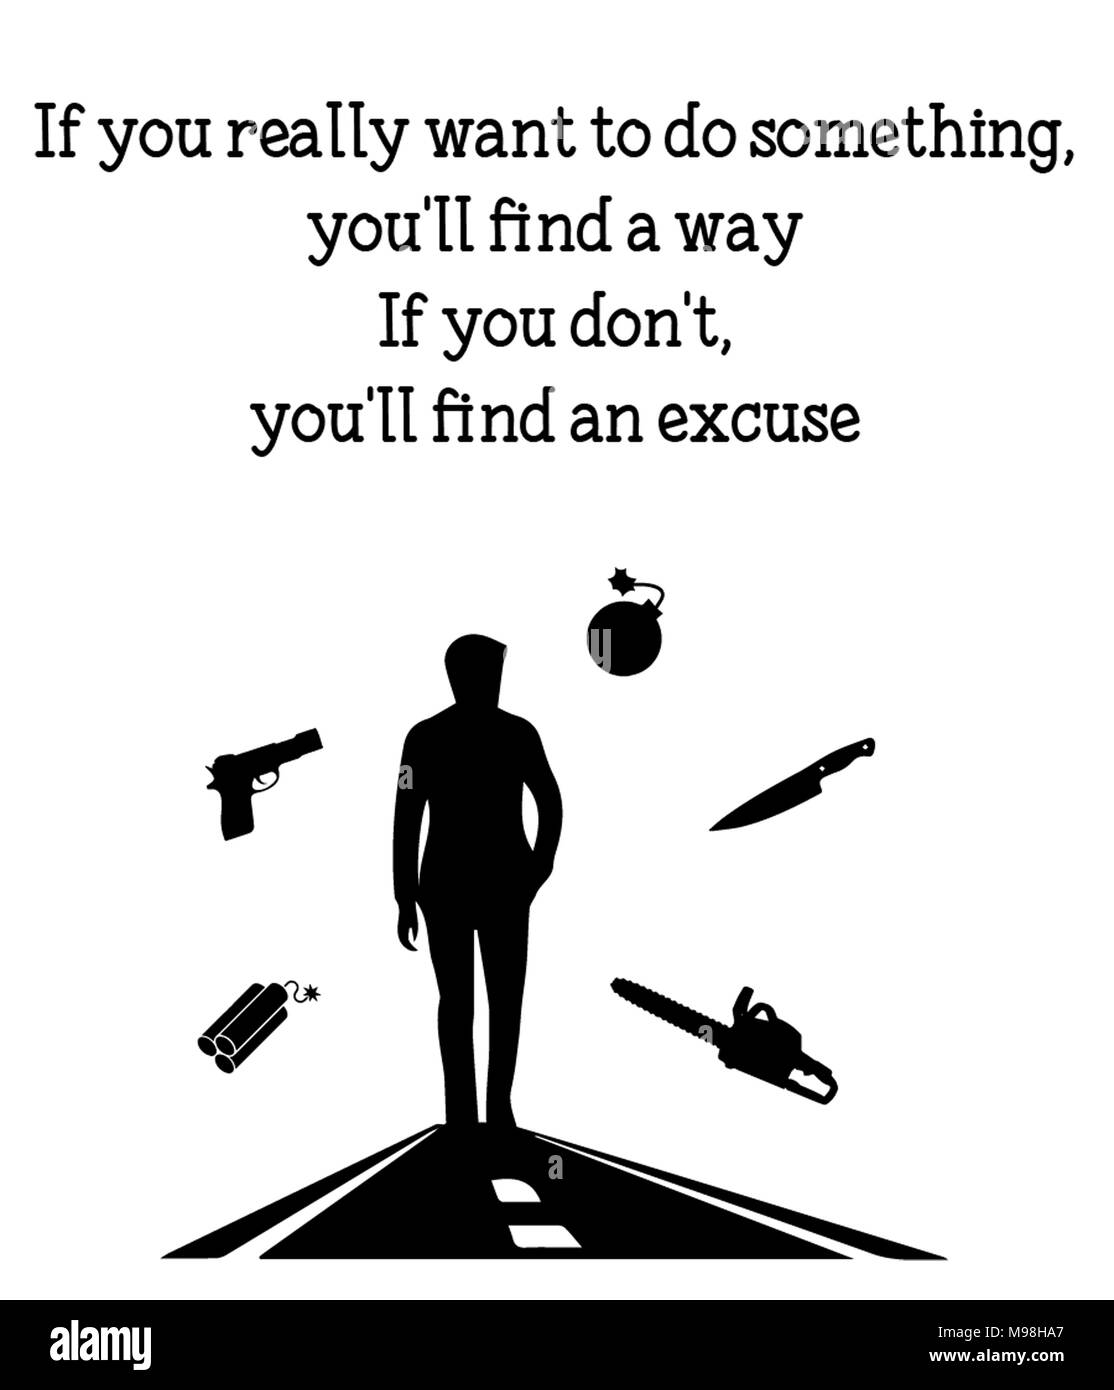 If you really want to do something, you'll find a way If you don't, you'll find an excuse - Stock Image